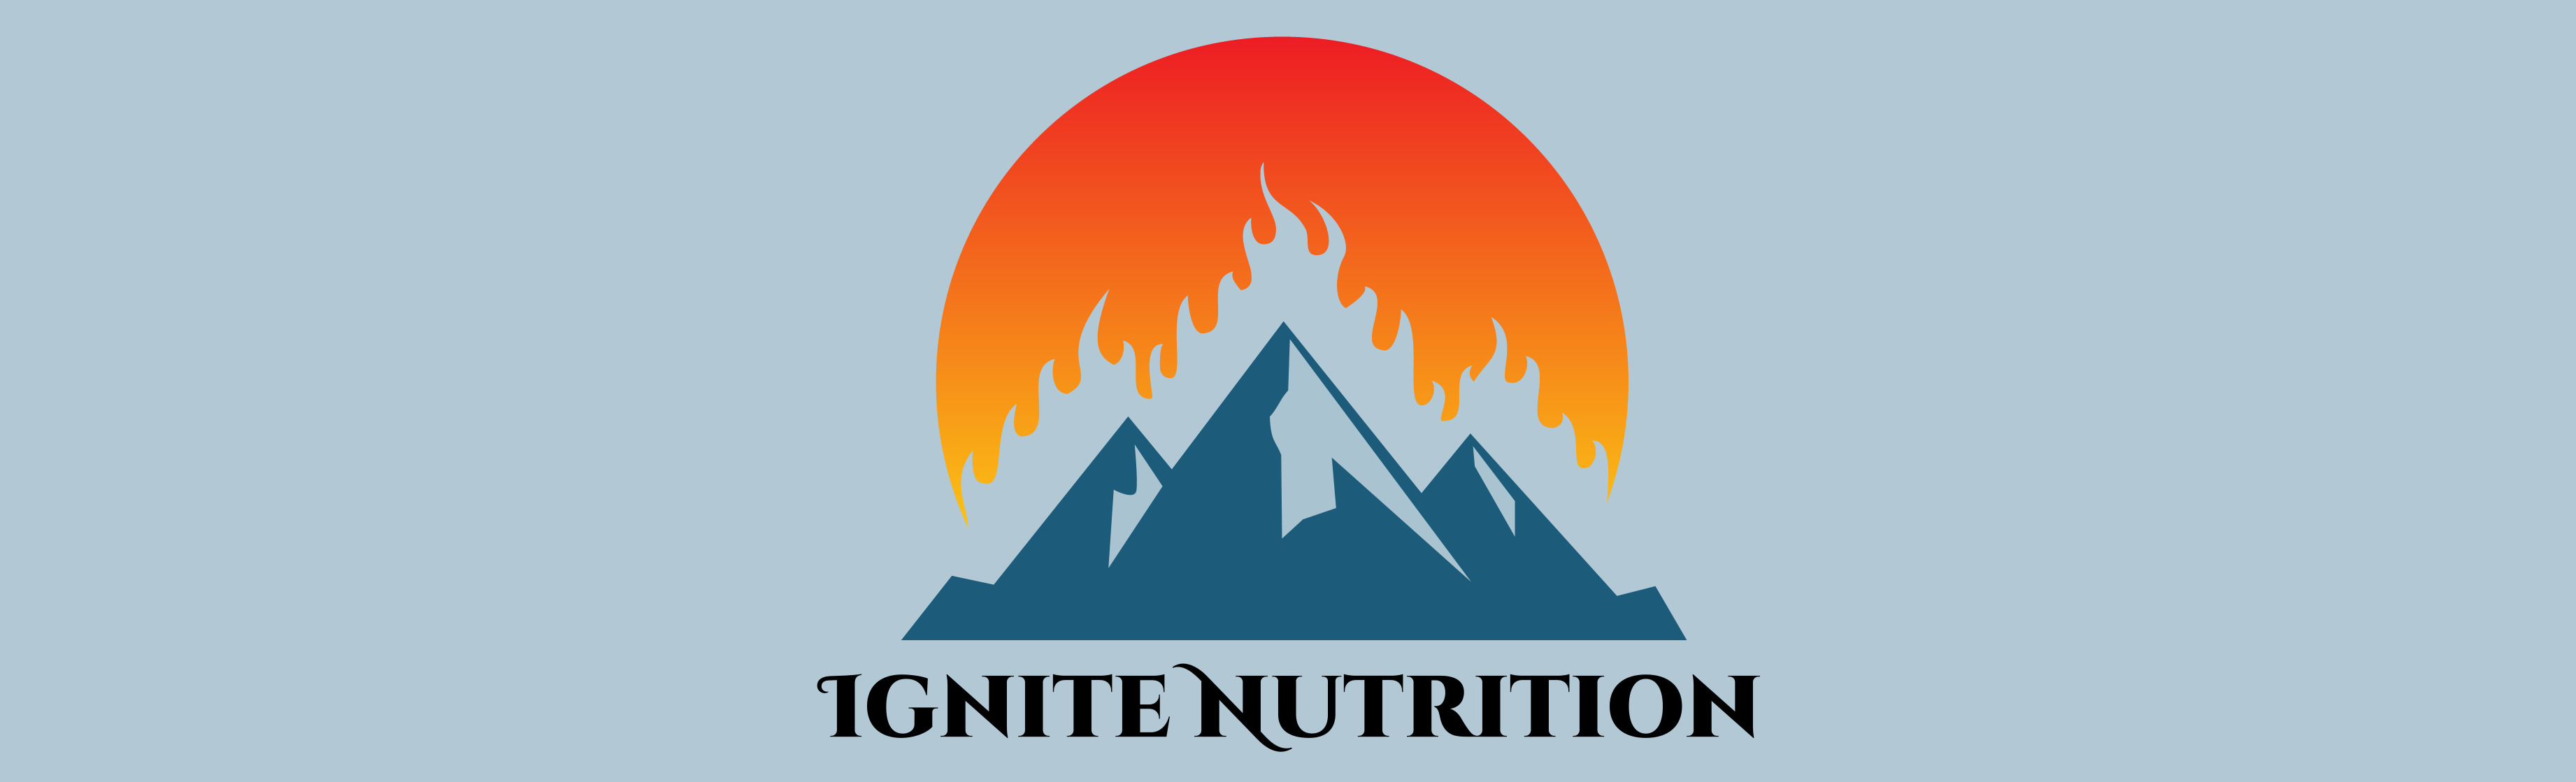 Ignite Nutrition